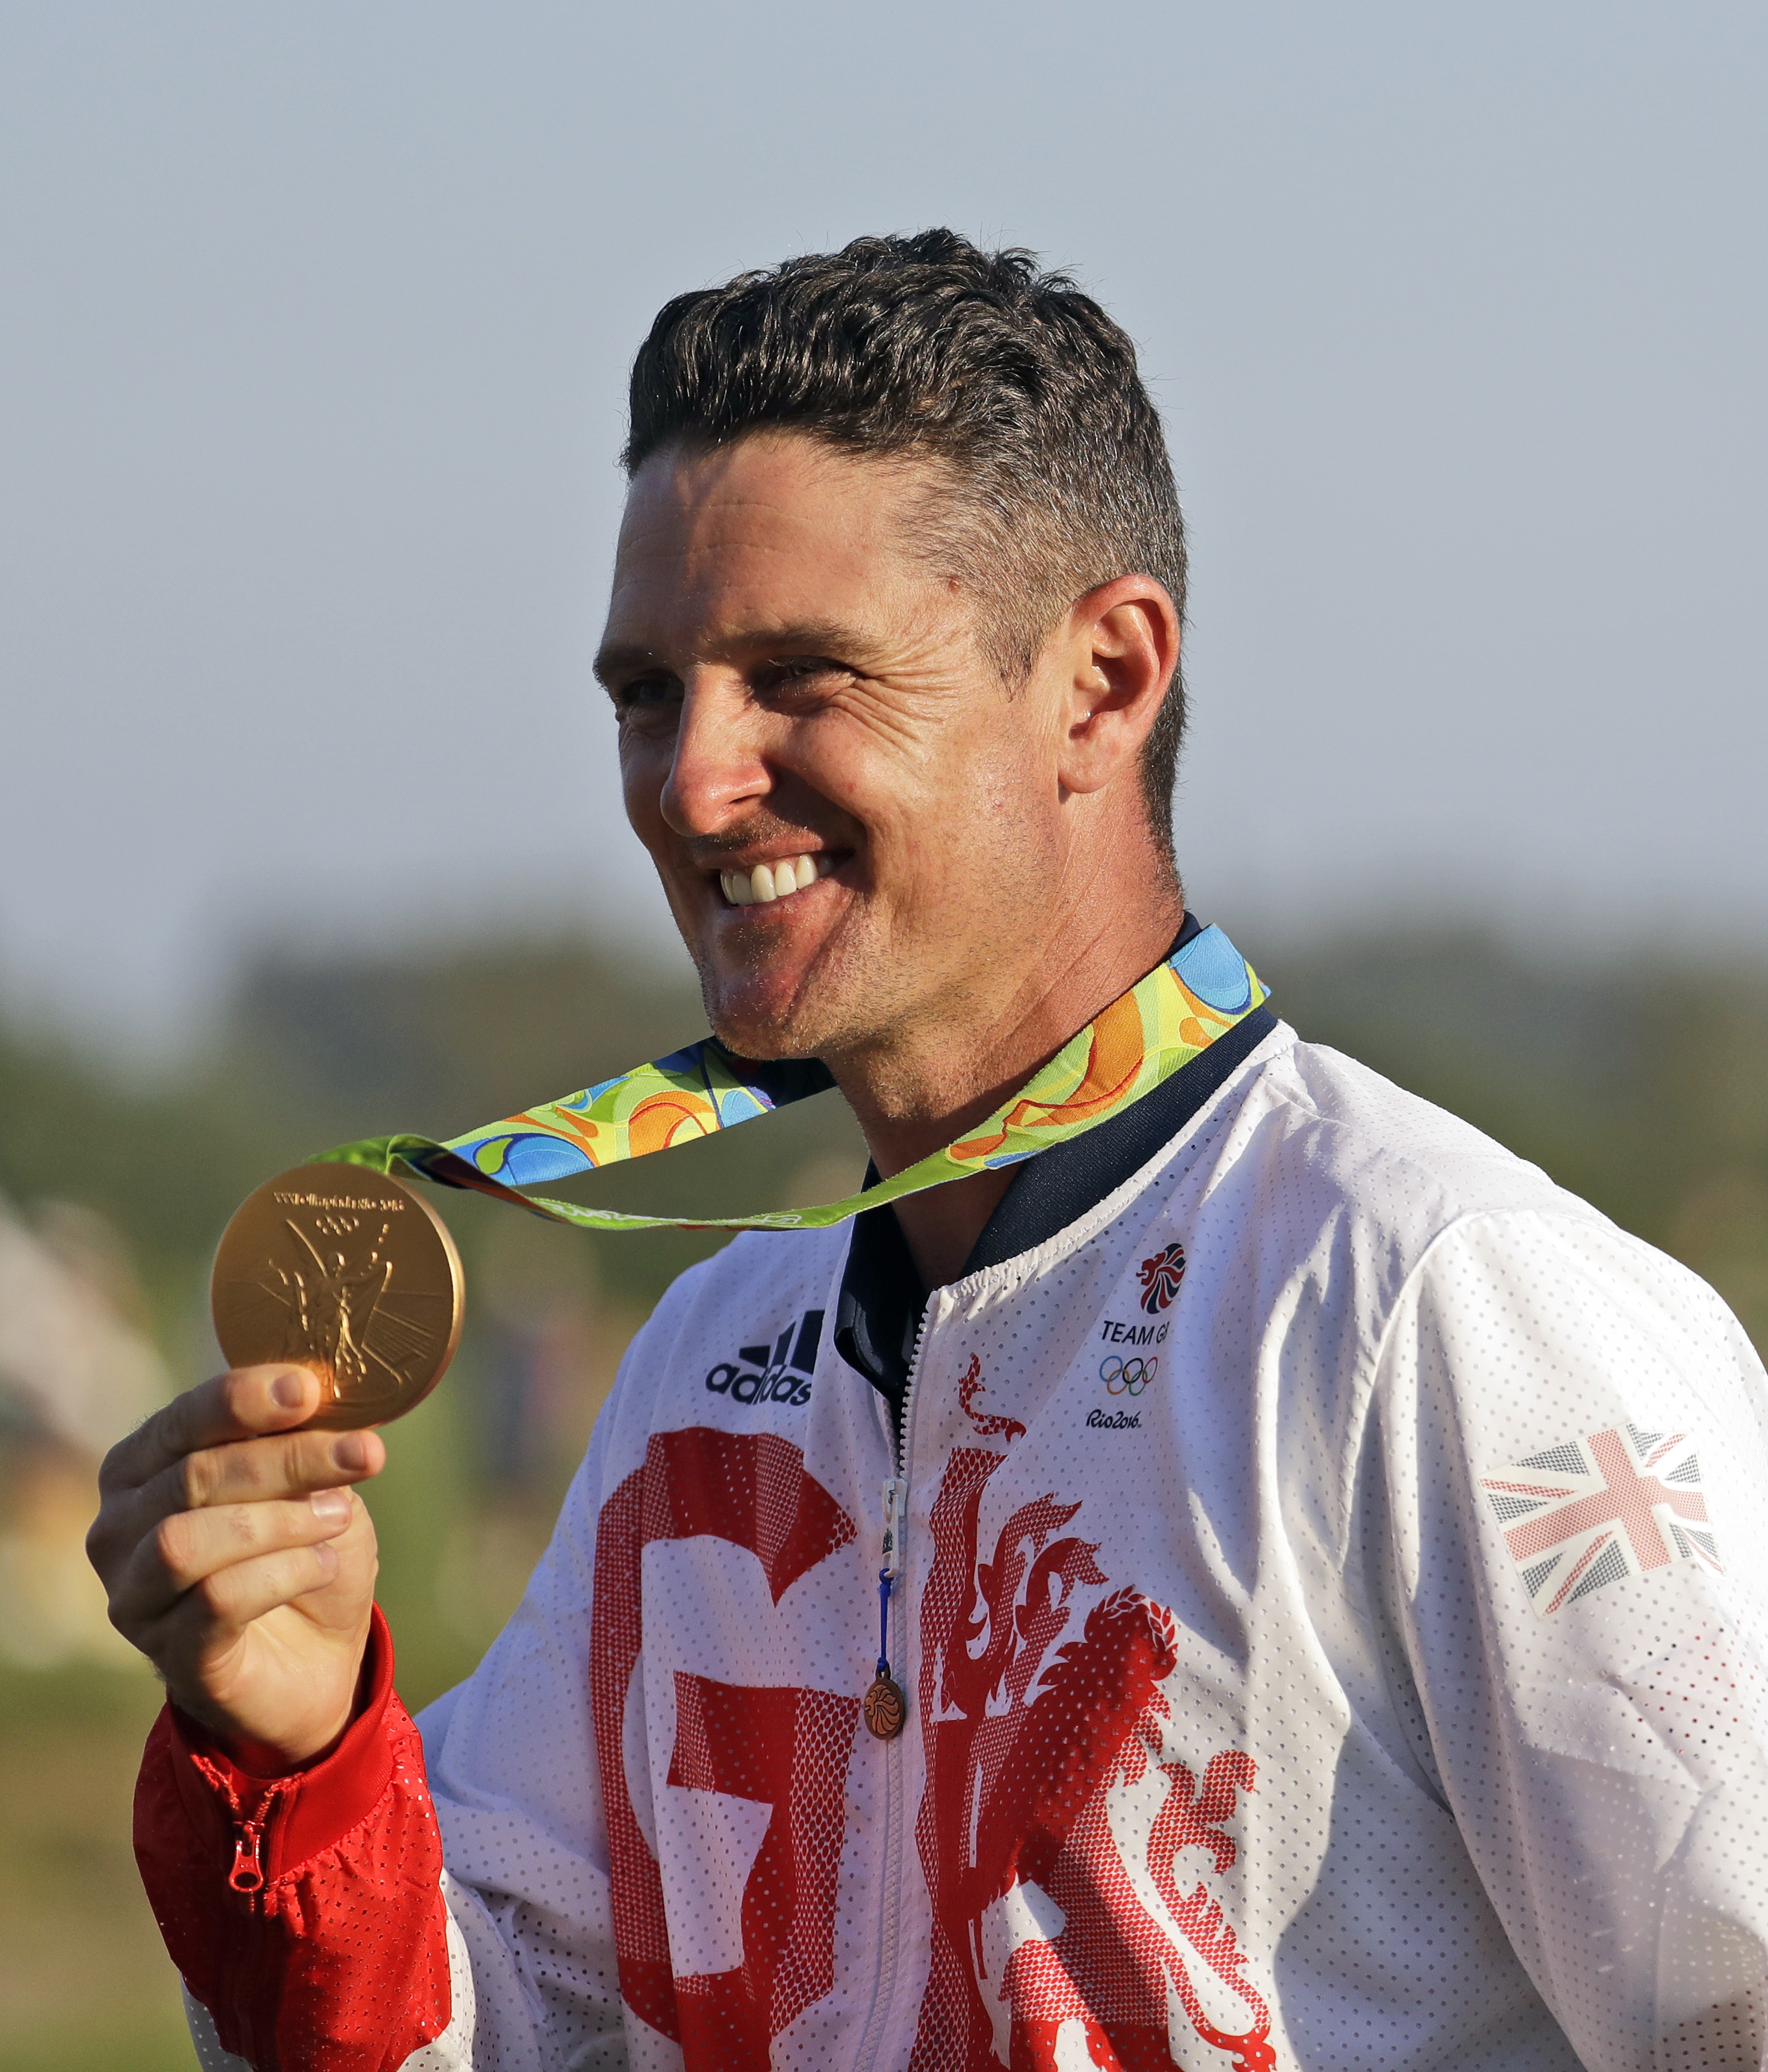 Justin Rose of Great Britain, holds up the gold medal after during the final round of the men's golf event at the 2016 Summer Olympics in Rio de Janeiro, Brazil, Sunday, Aug. 14, 2016. (AP Photo/Chris Carlson)